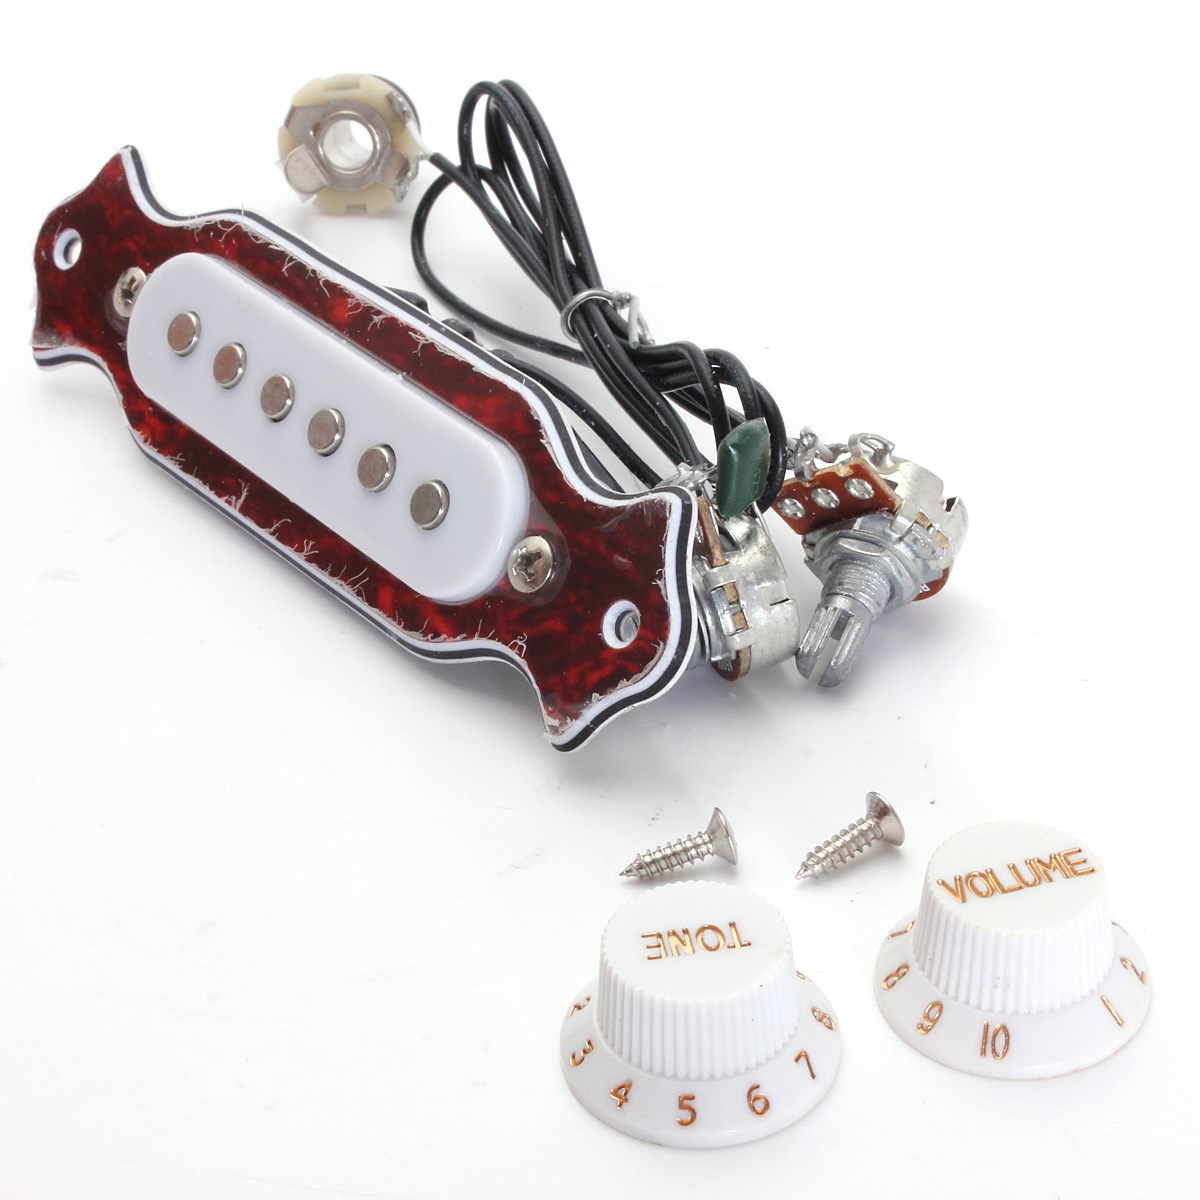 High quality Red+White Copper Single Magnetic Coil Noiseless Acoustic Electric Guitar Pickup Accessories Parts high quality black copper single magnetic coil noiseless acoustic electric guitar pickup accessories parts